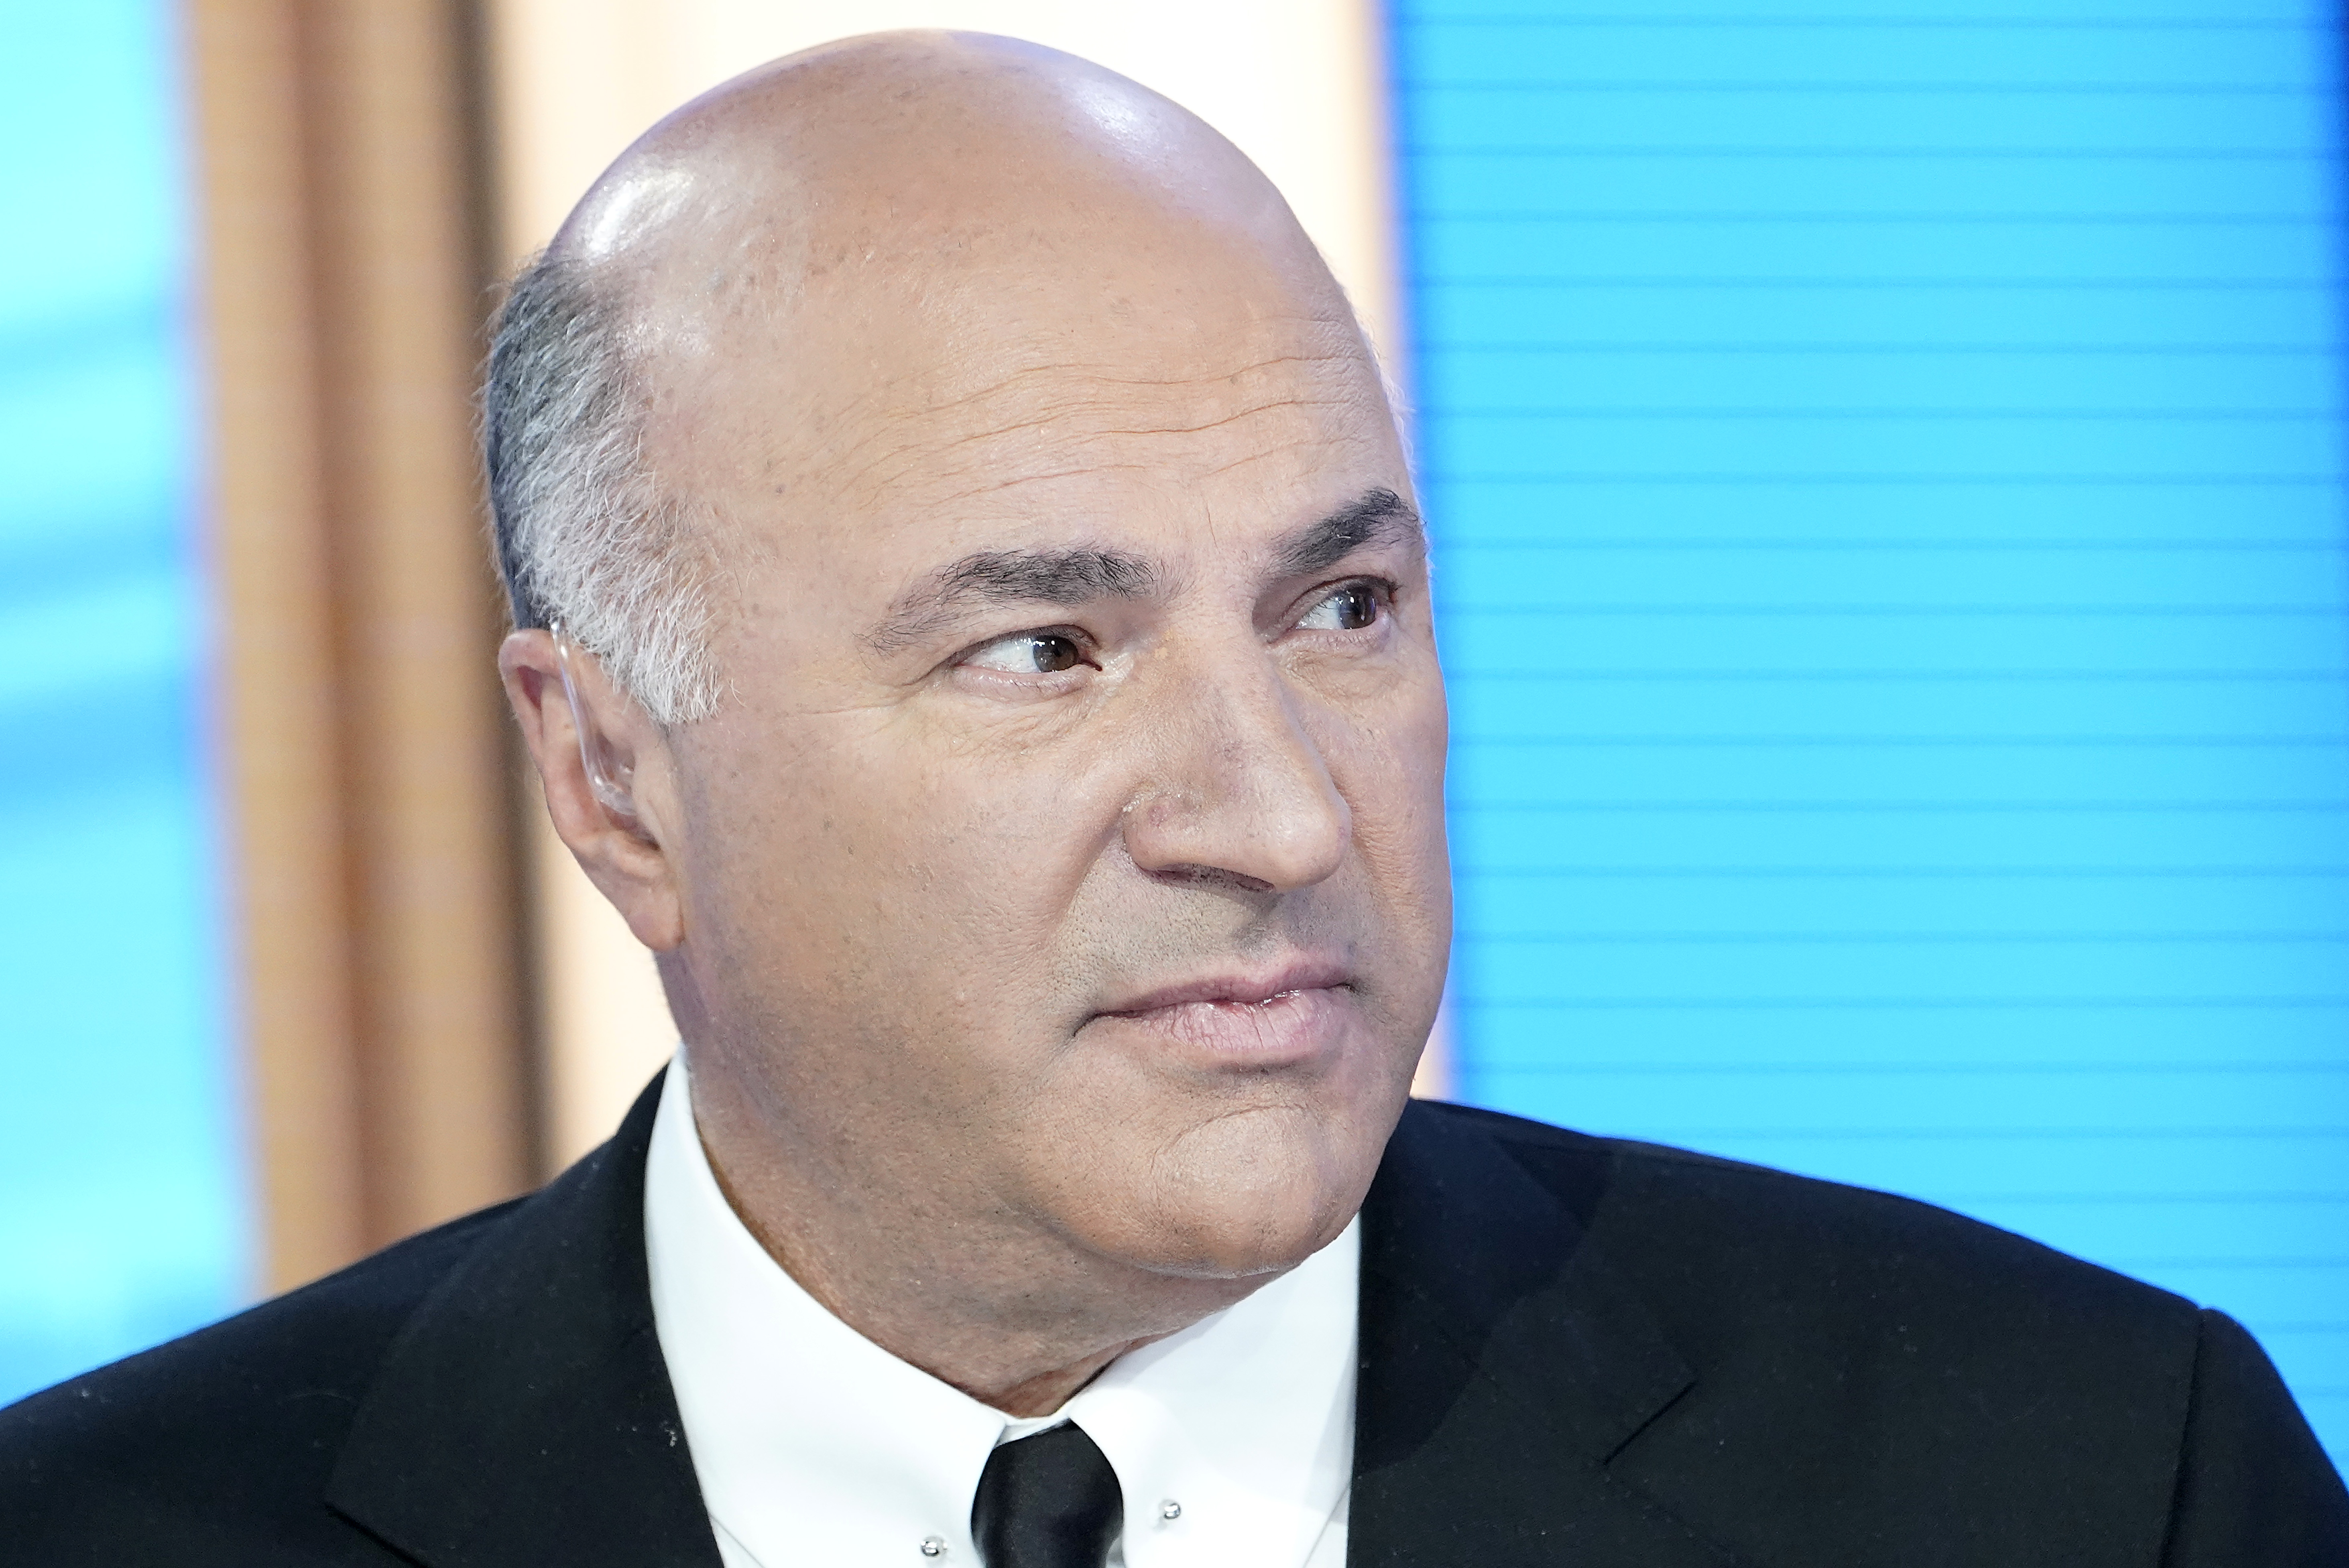 Kevin O'Leary on cryptocurrency: 'I don't own random ETFs with blood coin in them'